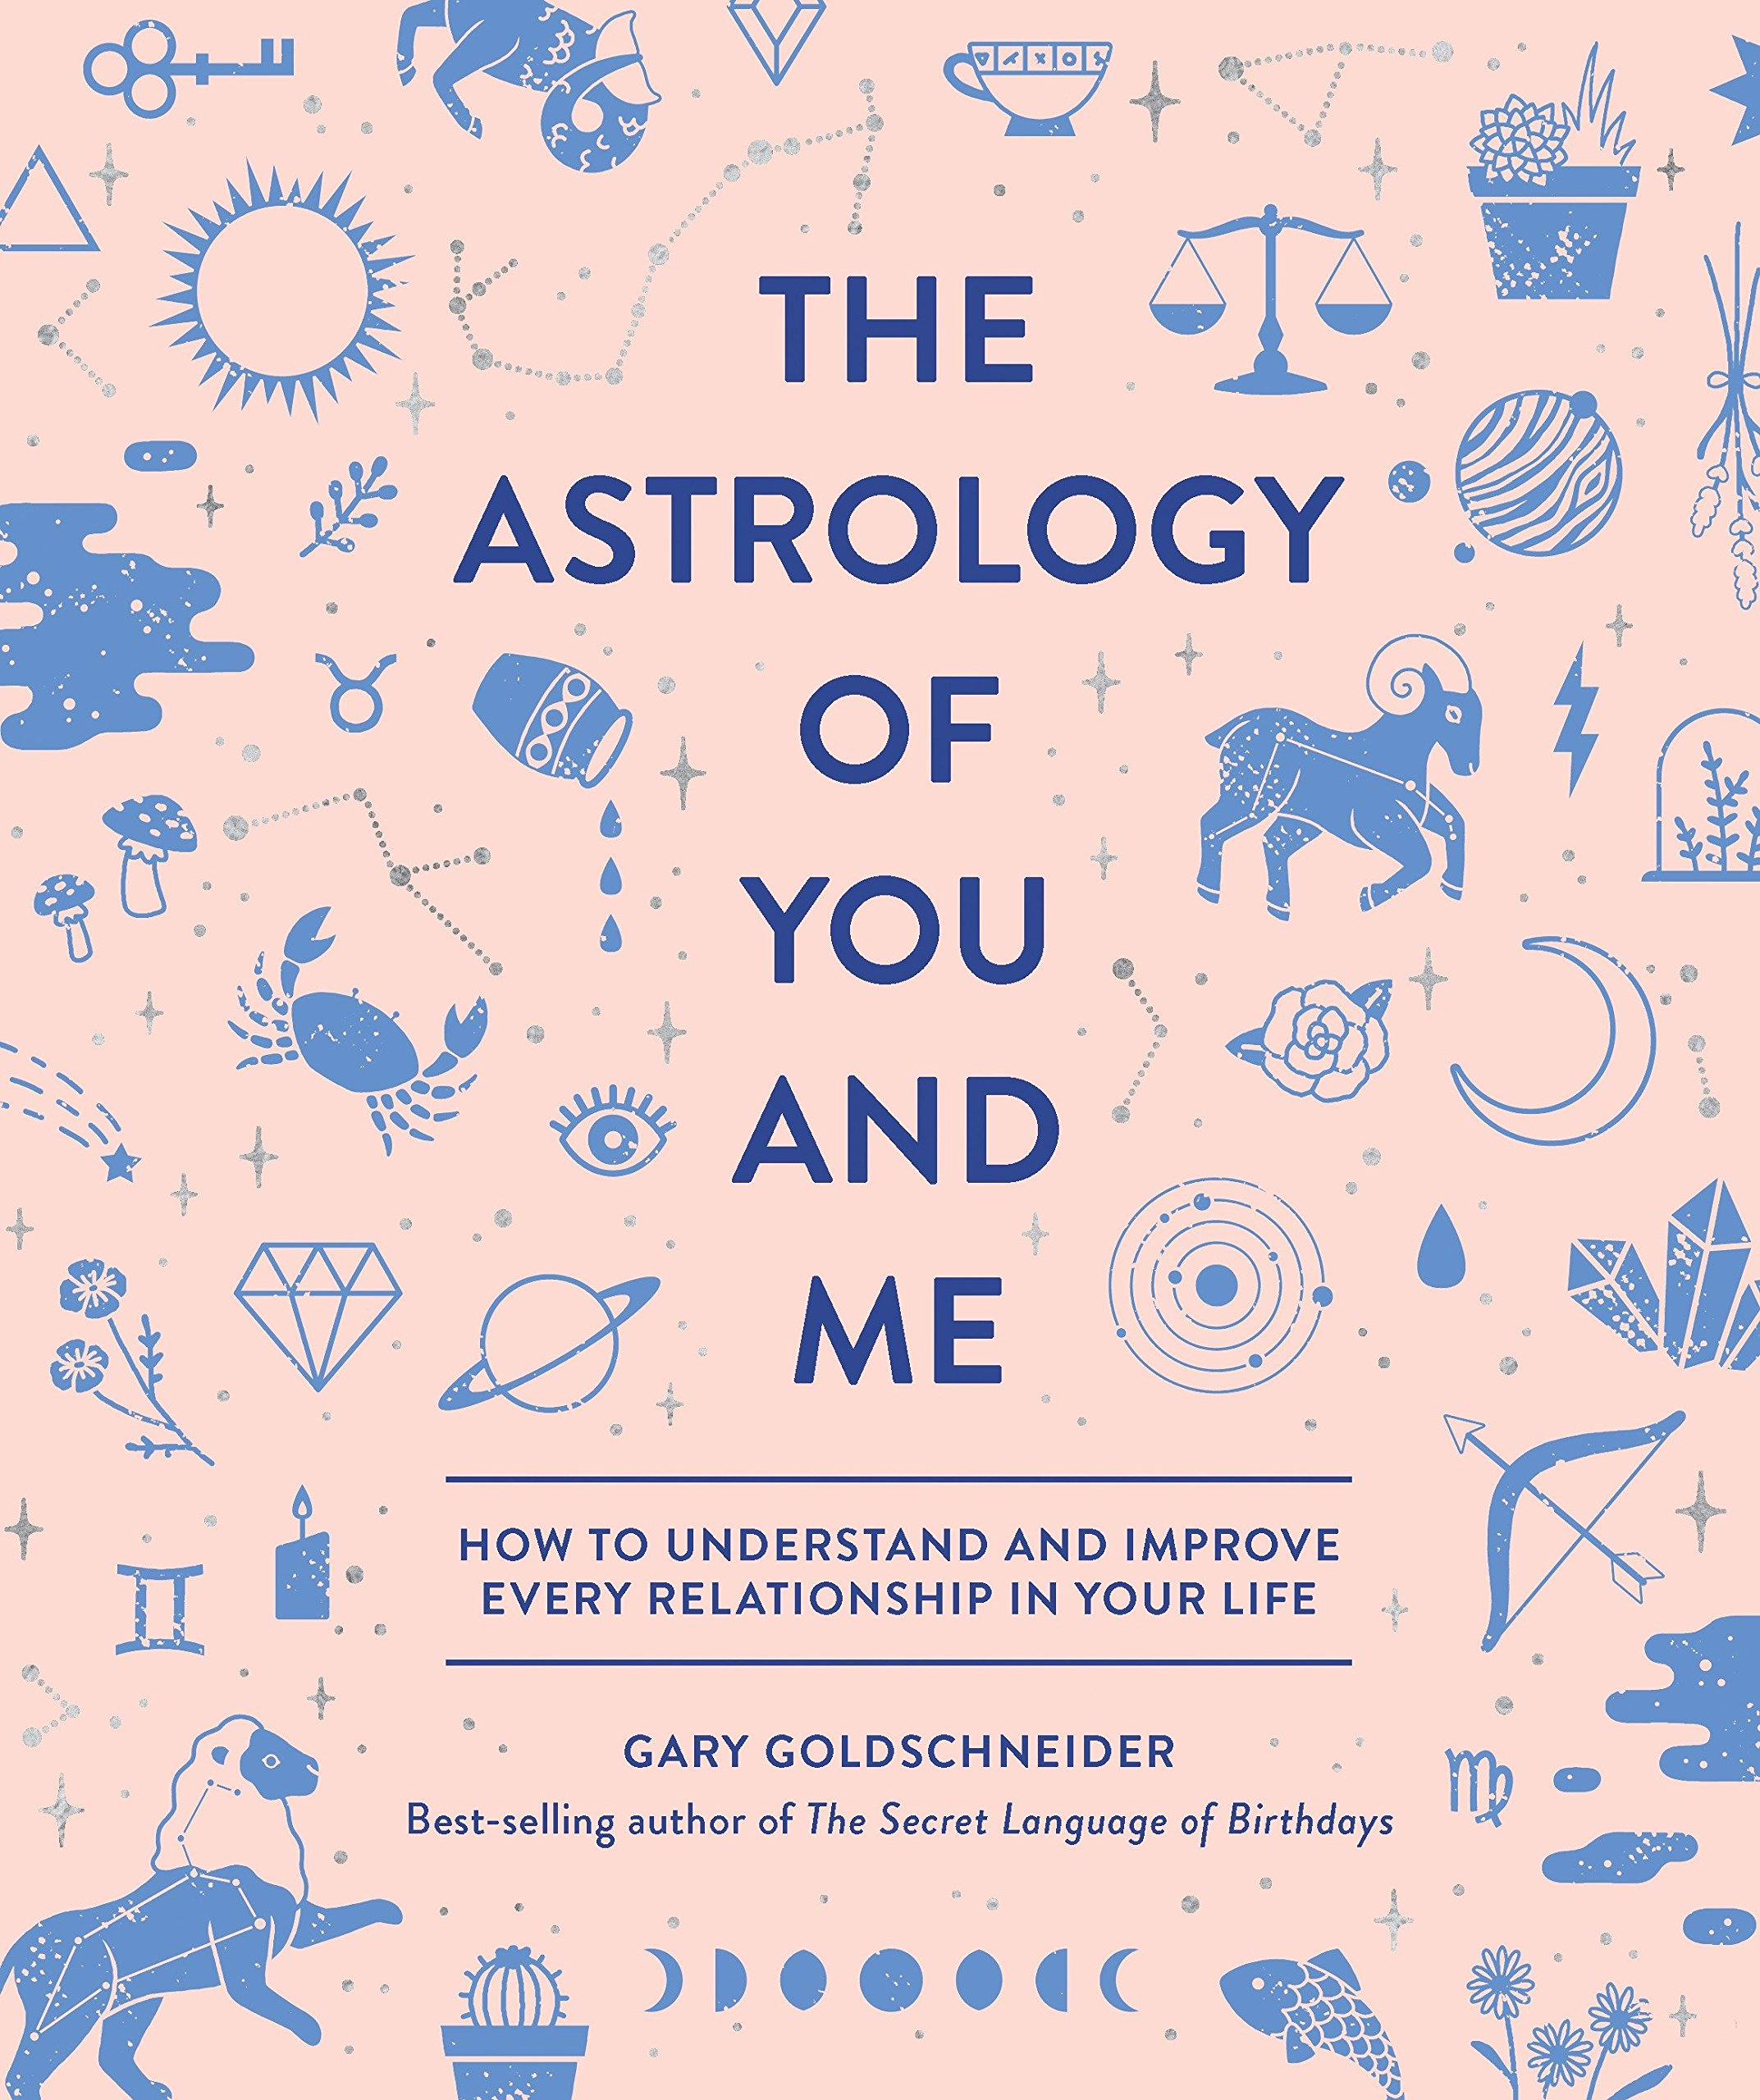 Astrology of You and Me Book Amazon